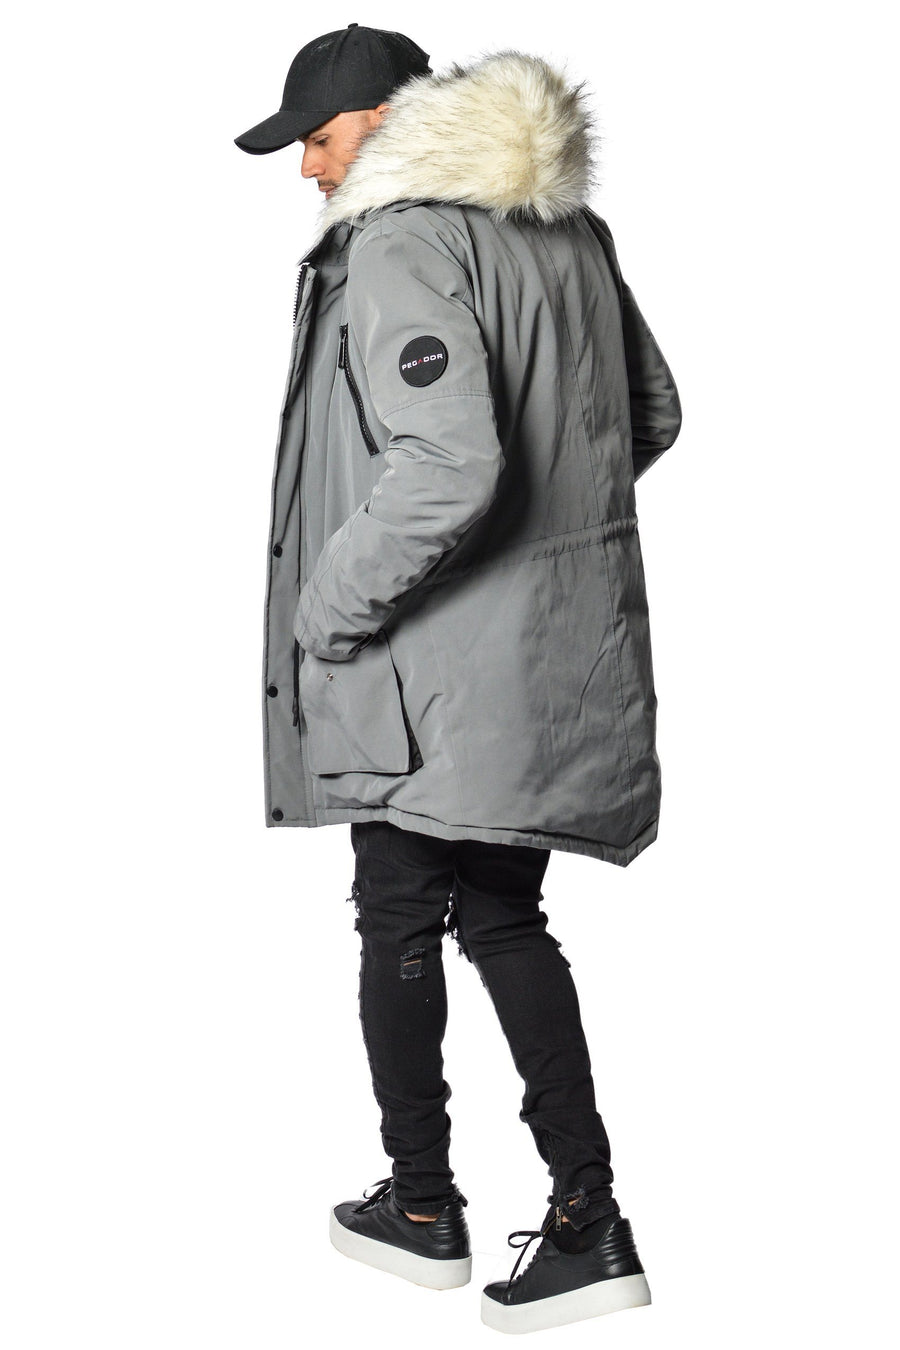 PEGADOR - Arctic Parka Space Grey & White Fur - PEGADOR - Dominate the Hype